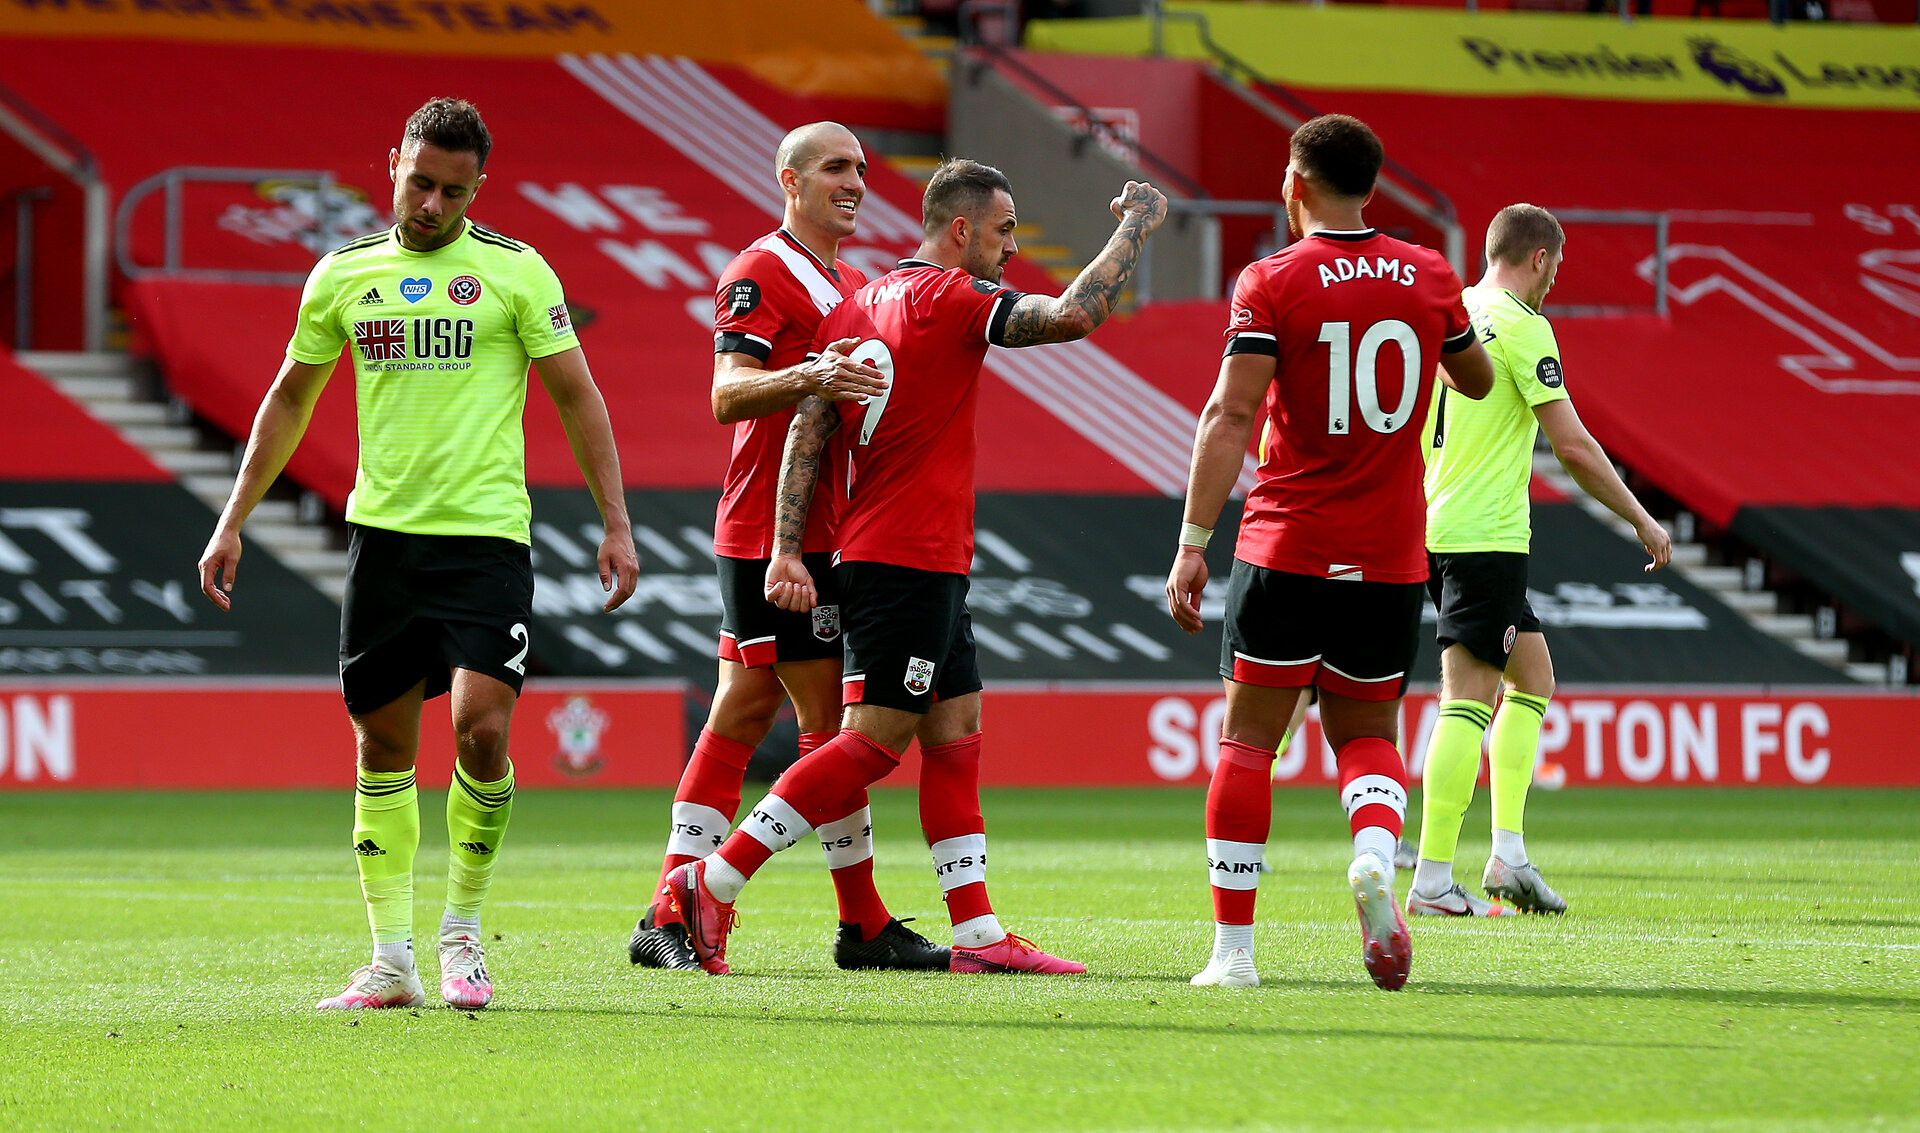 SOUTHAMPTON, ENGLAND - JULY 26: Danny Ings(centre) of Southampton celebrates after scoring from the penalty spot during the Premier League match between Southampton FC and Sheffield United at St Mary's Stadium on July 26, 2020 in Southampton, United Kingdom. (Photo by Matt Watson/Southampton FC via Getty Images)